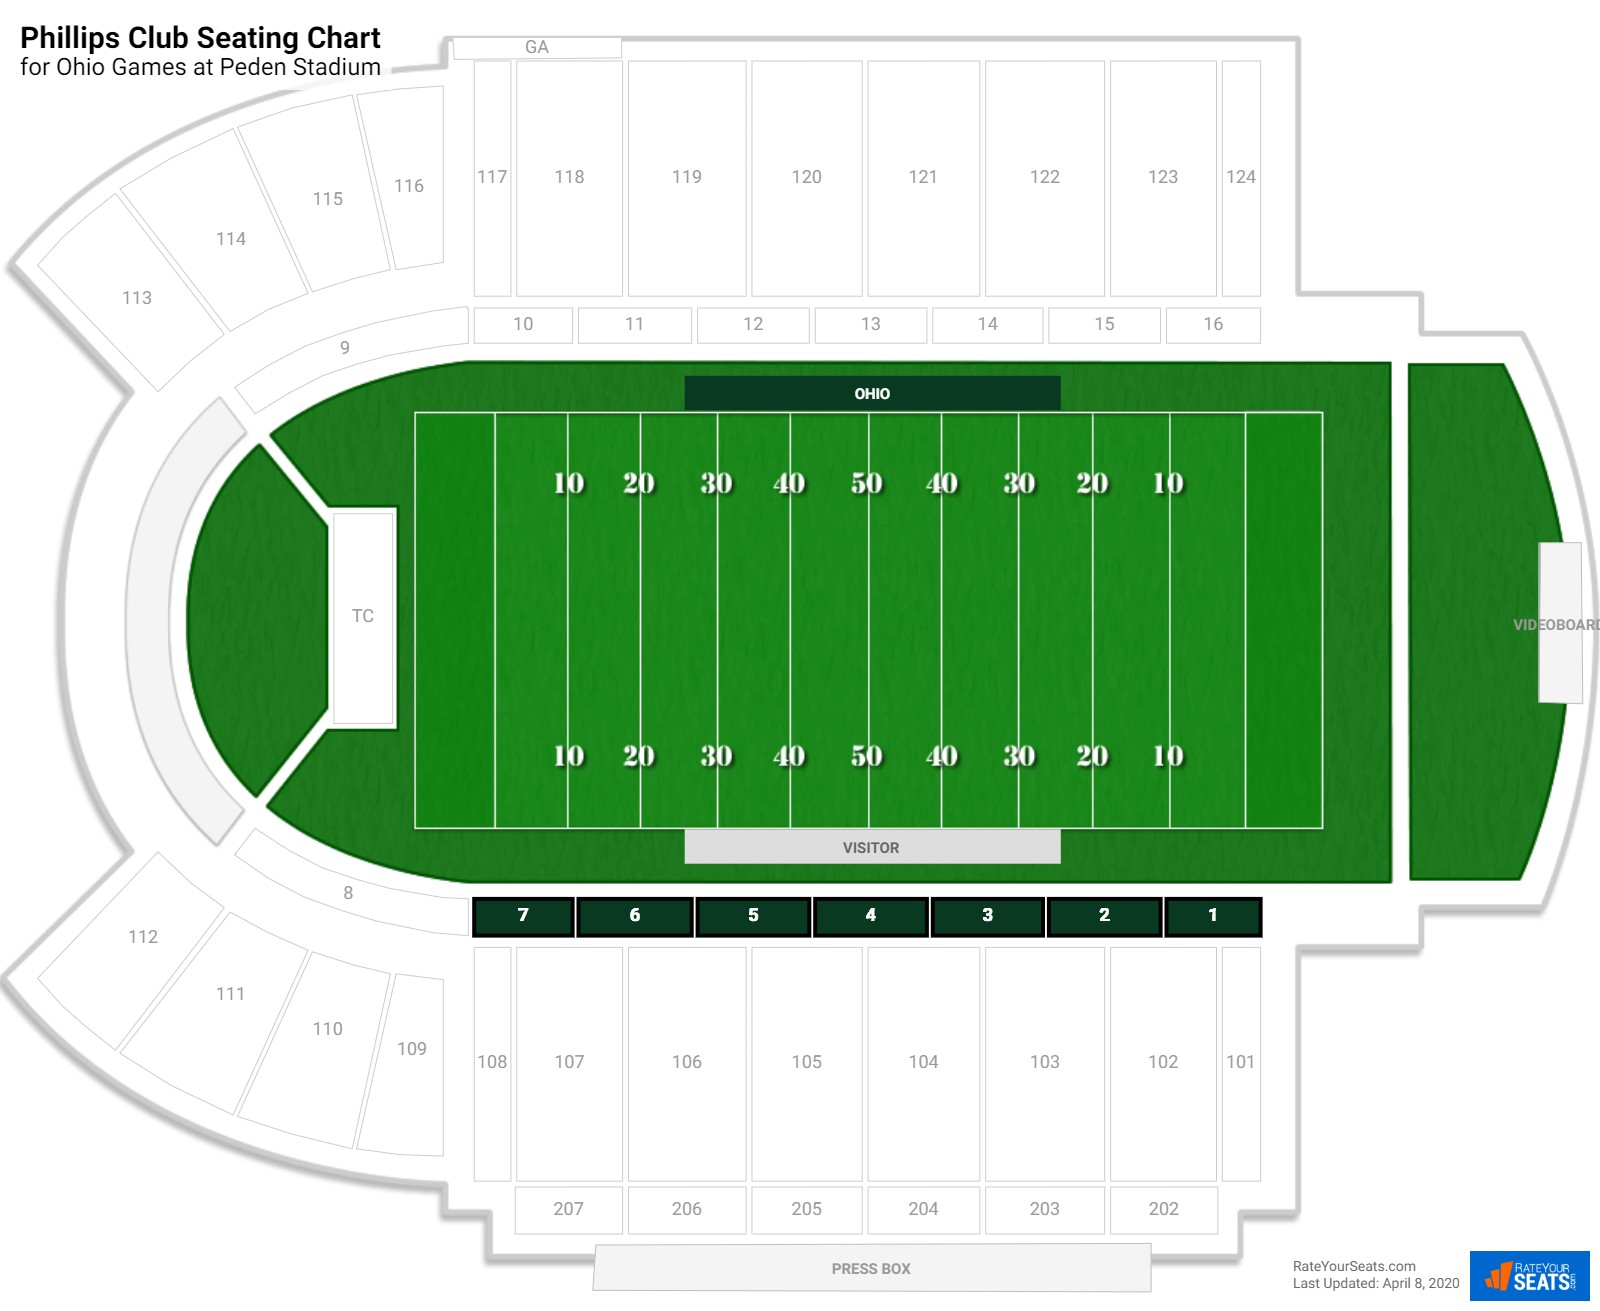 Peden Stadium Phillips Club seating chart